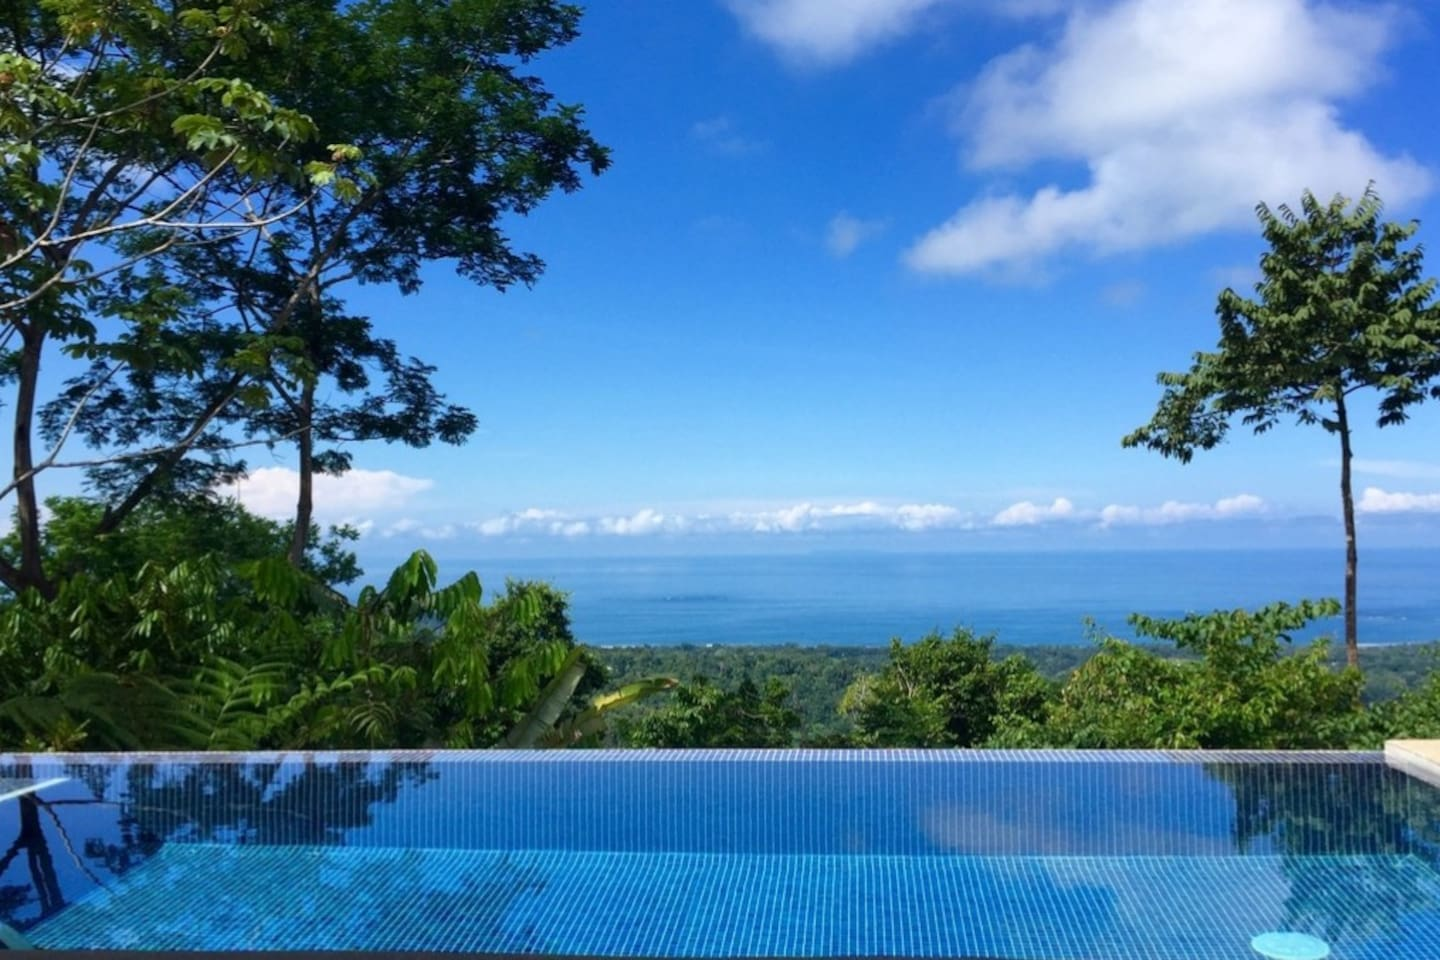 Romantic Uvita getaway.  Infinity pool with spectacular ocean and coastal views while nature abounds in the rainforest canopy just below you.